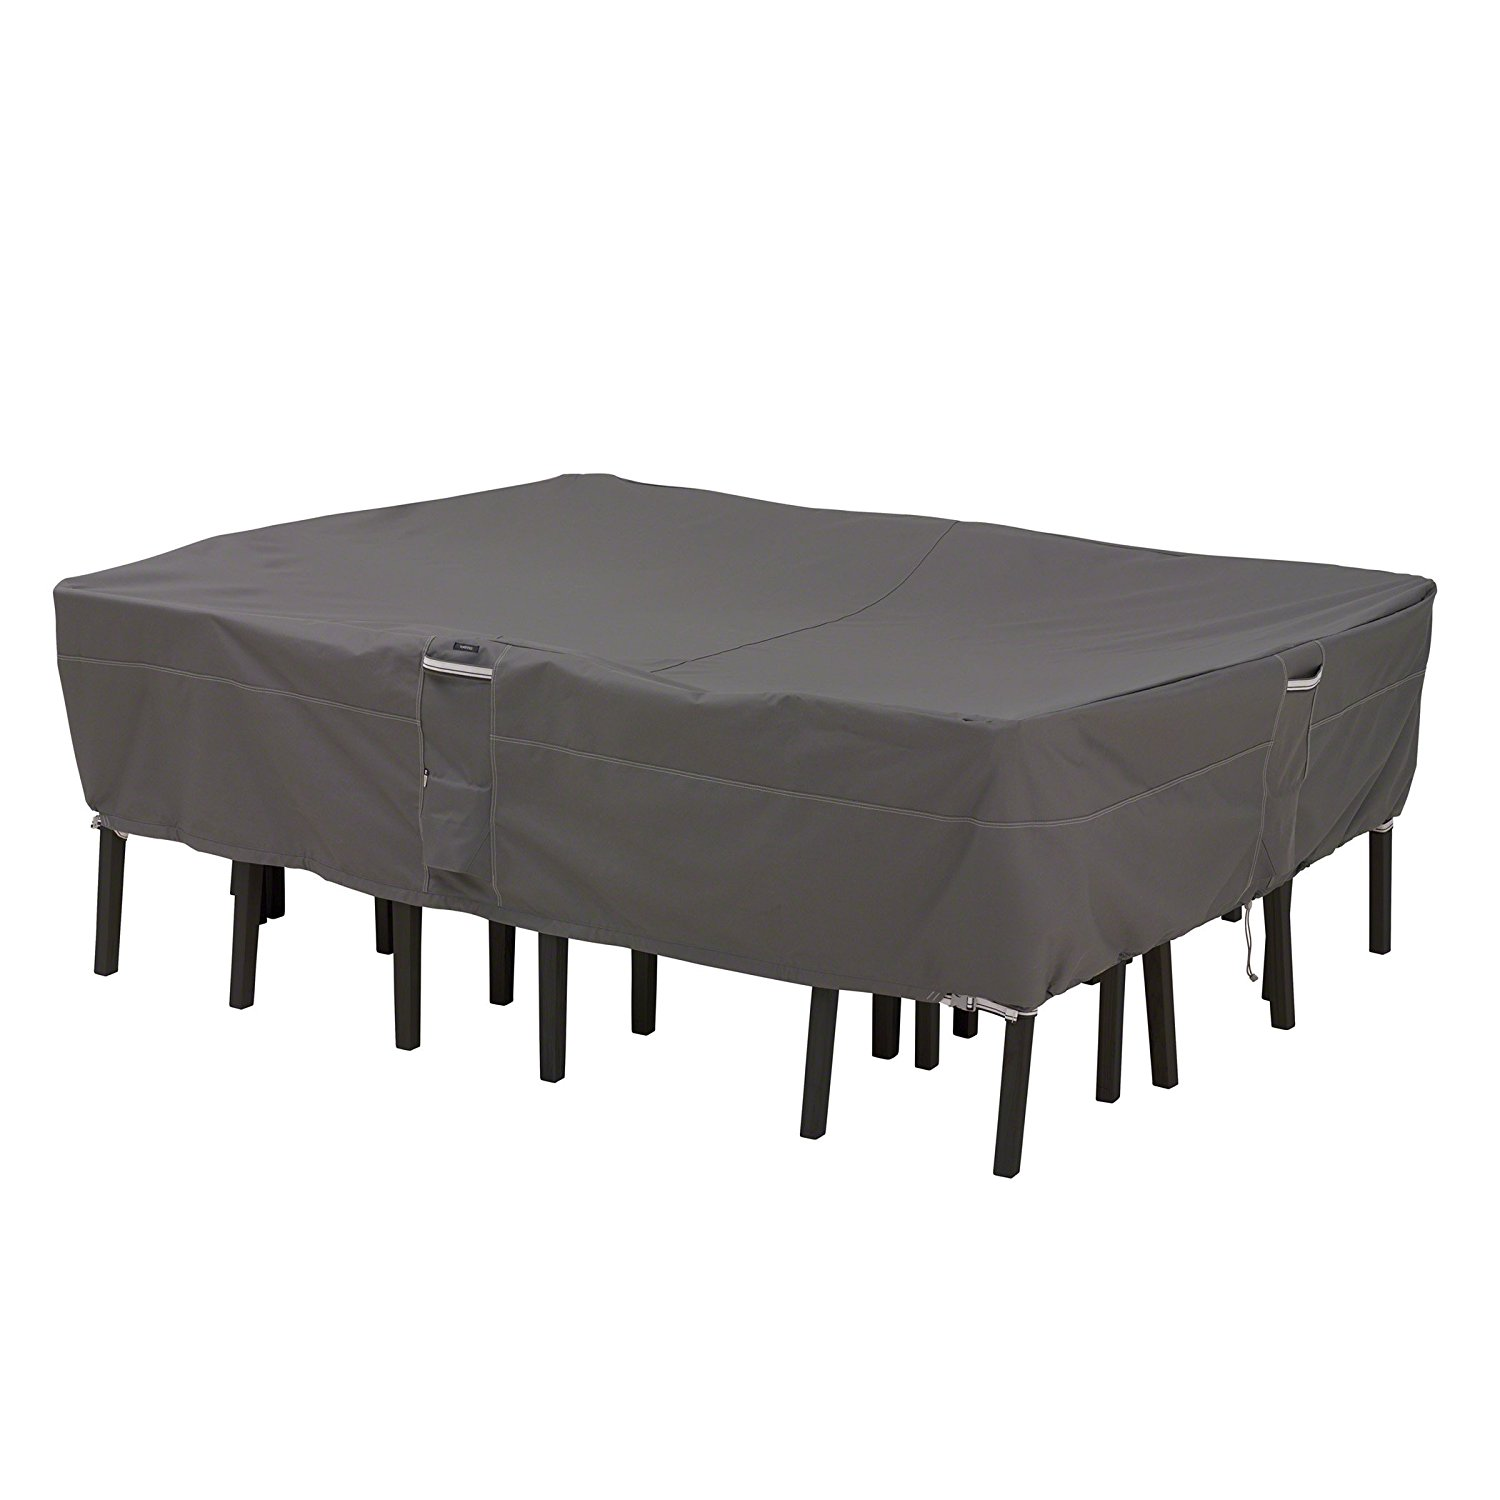 Review of Classic Accessories Ravenna Medium Rectangular/Oval Patio Table and Chair Set Cover